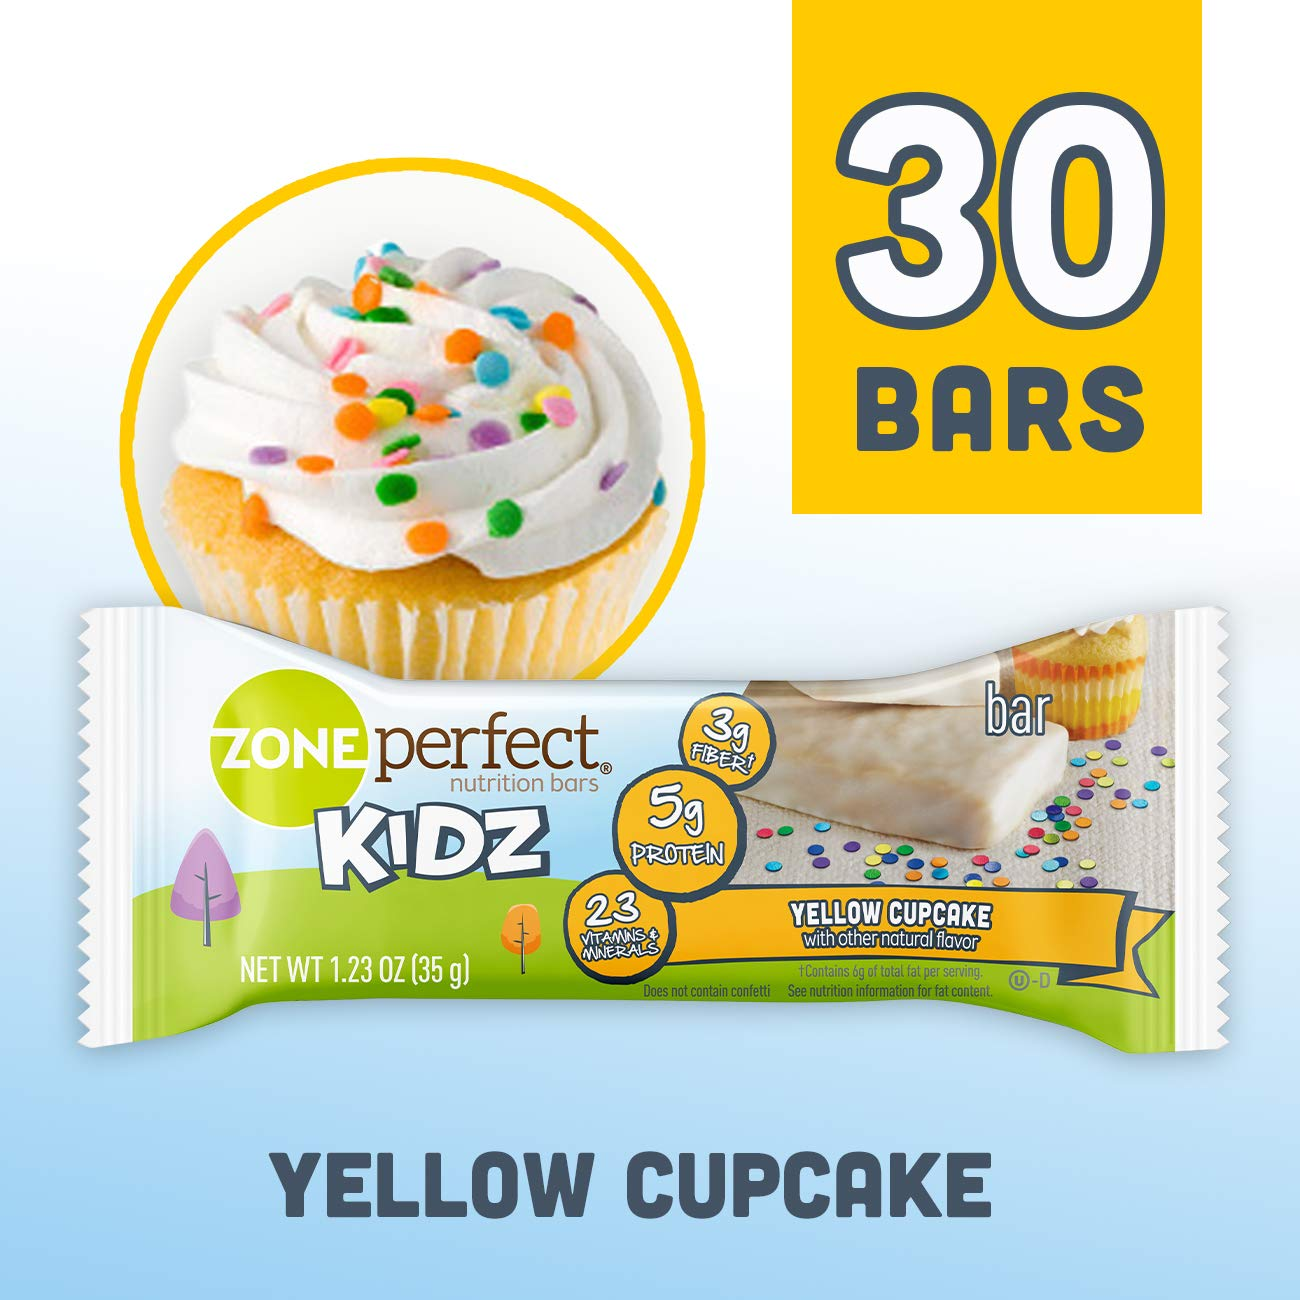 ZonePerfect Kidz Nutrition Bars, No Artificial Flavors or Colors, Yellow Cupcake, 1.23 oz, 30 Count by ZonePerfect Kidz